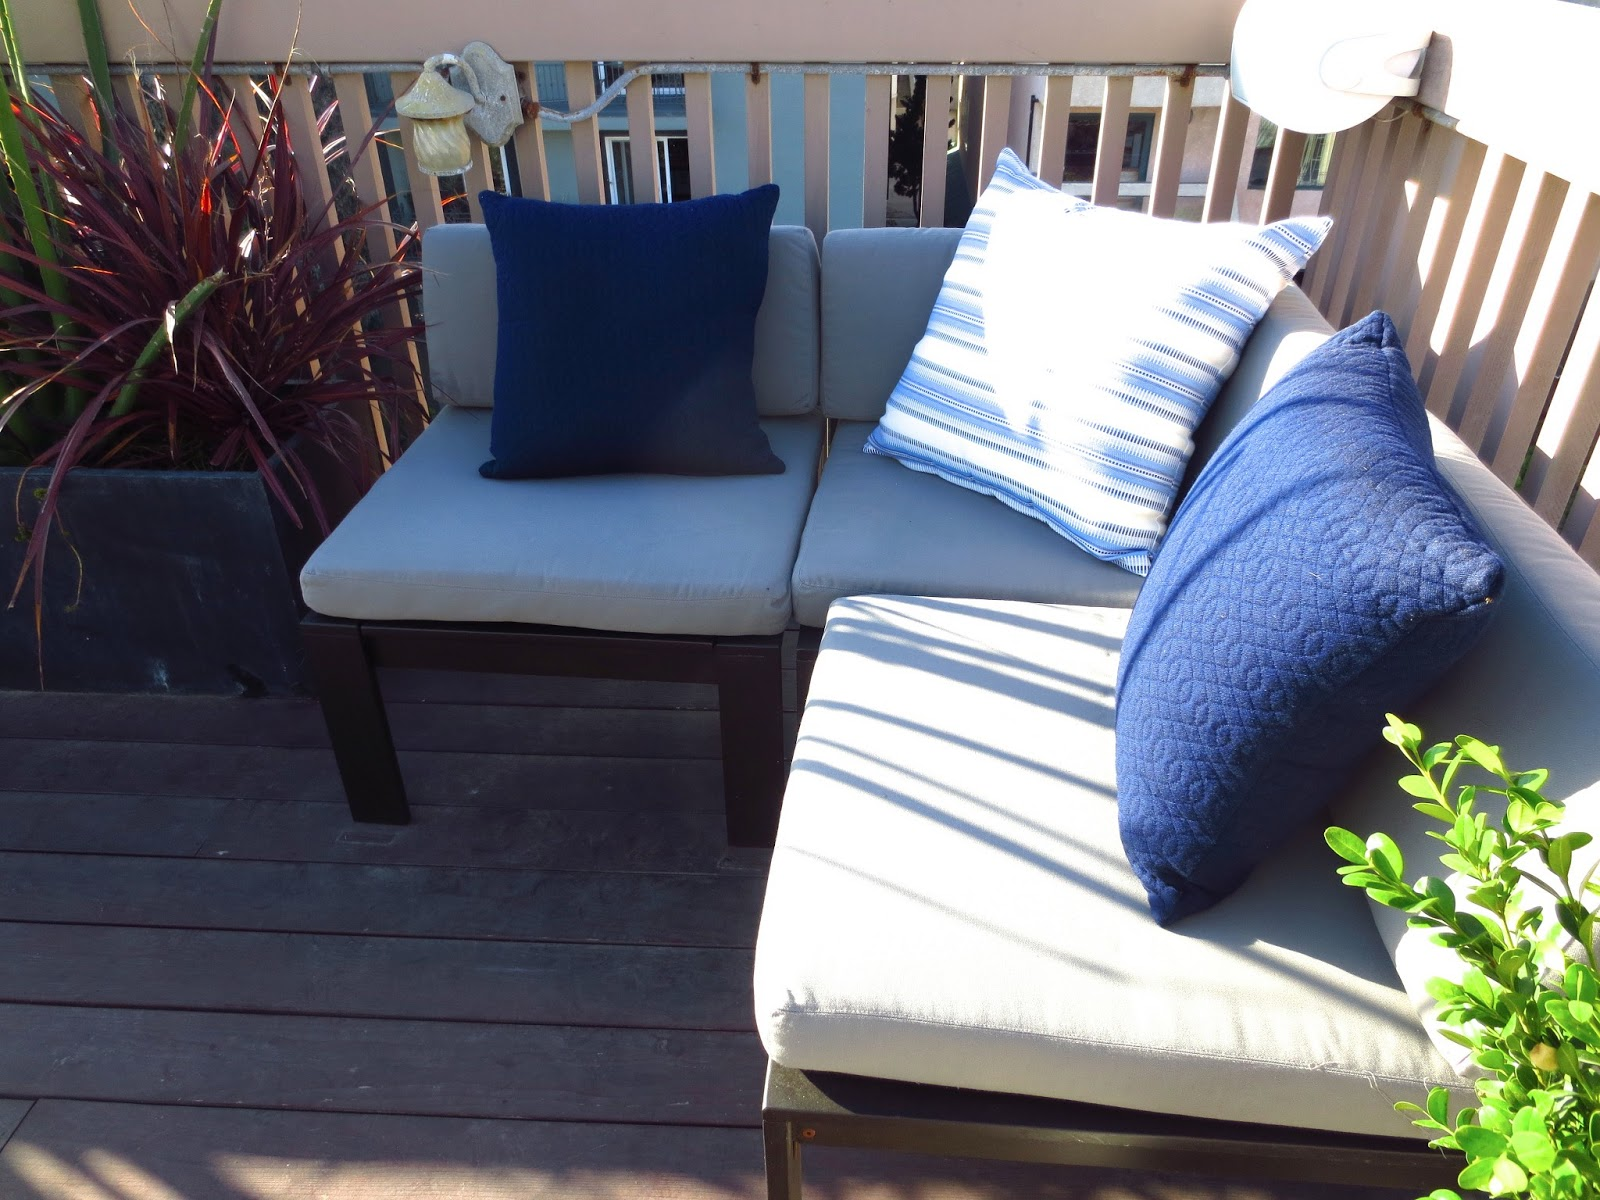 COCOCOZY: OCEAN VIEW OUTDOOR LIVING ROOM IN THE MDR!